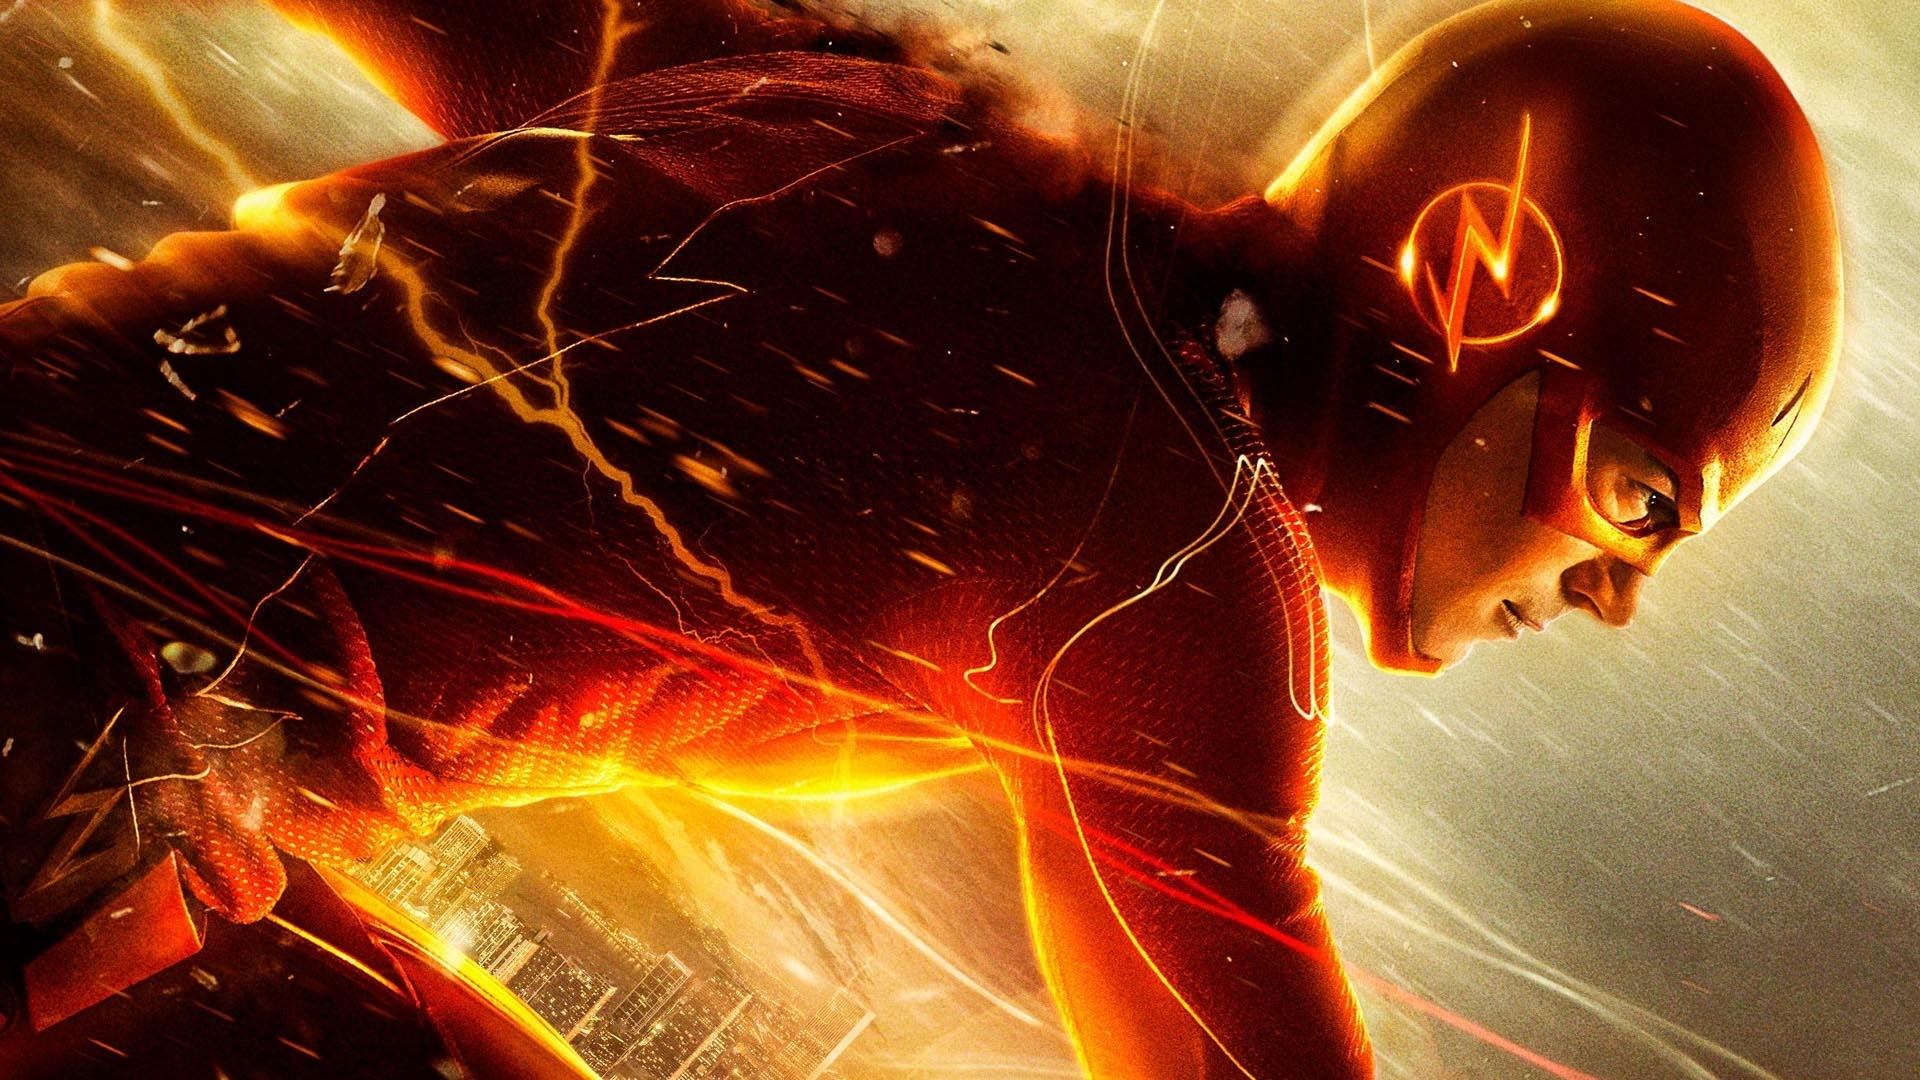 10 Latest The Flash Hd Wallpaper FULL HD 1920×1080 For PC Desktop